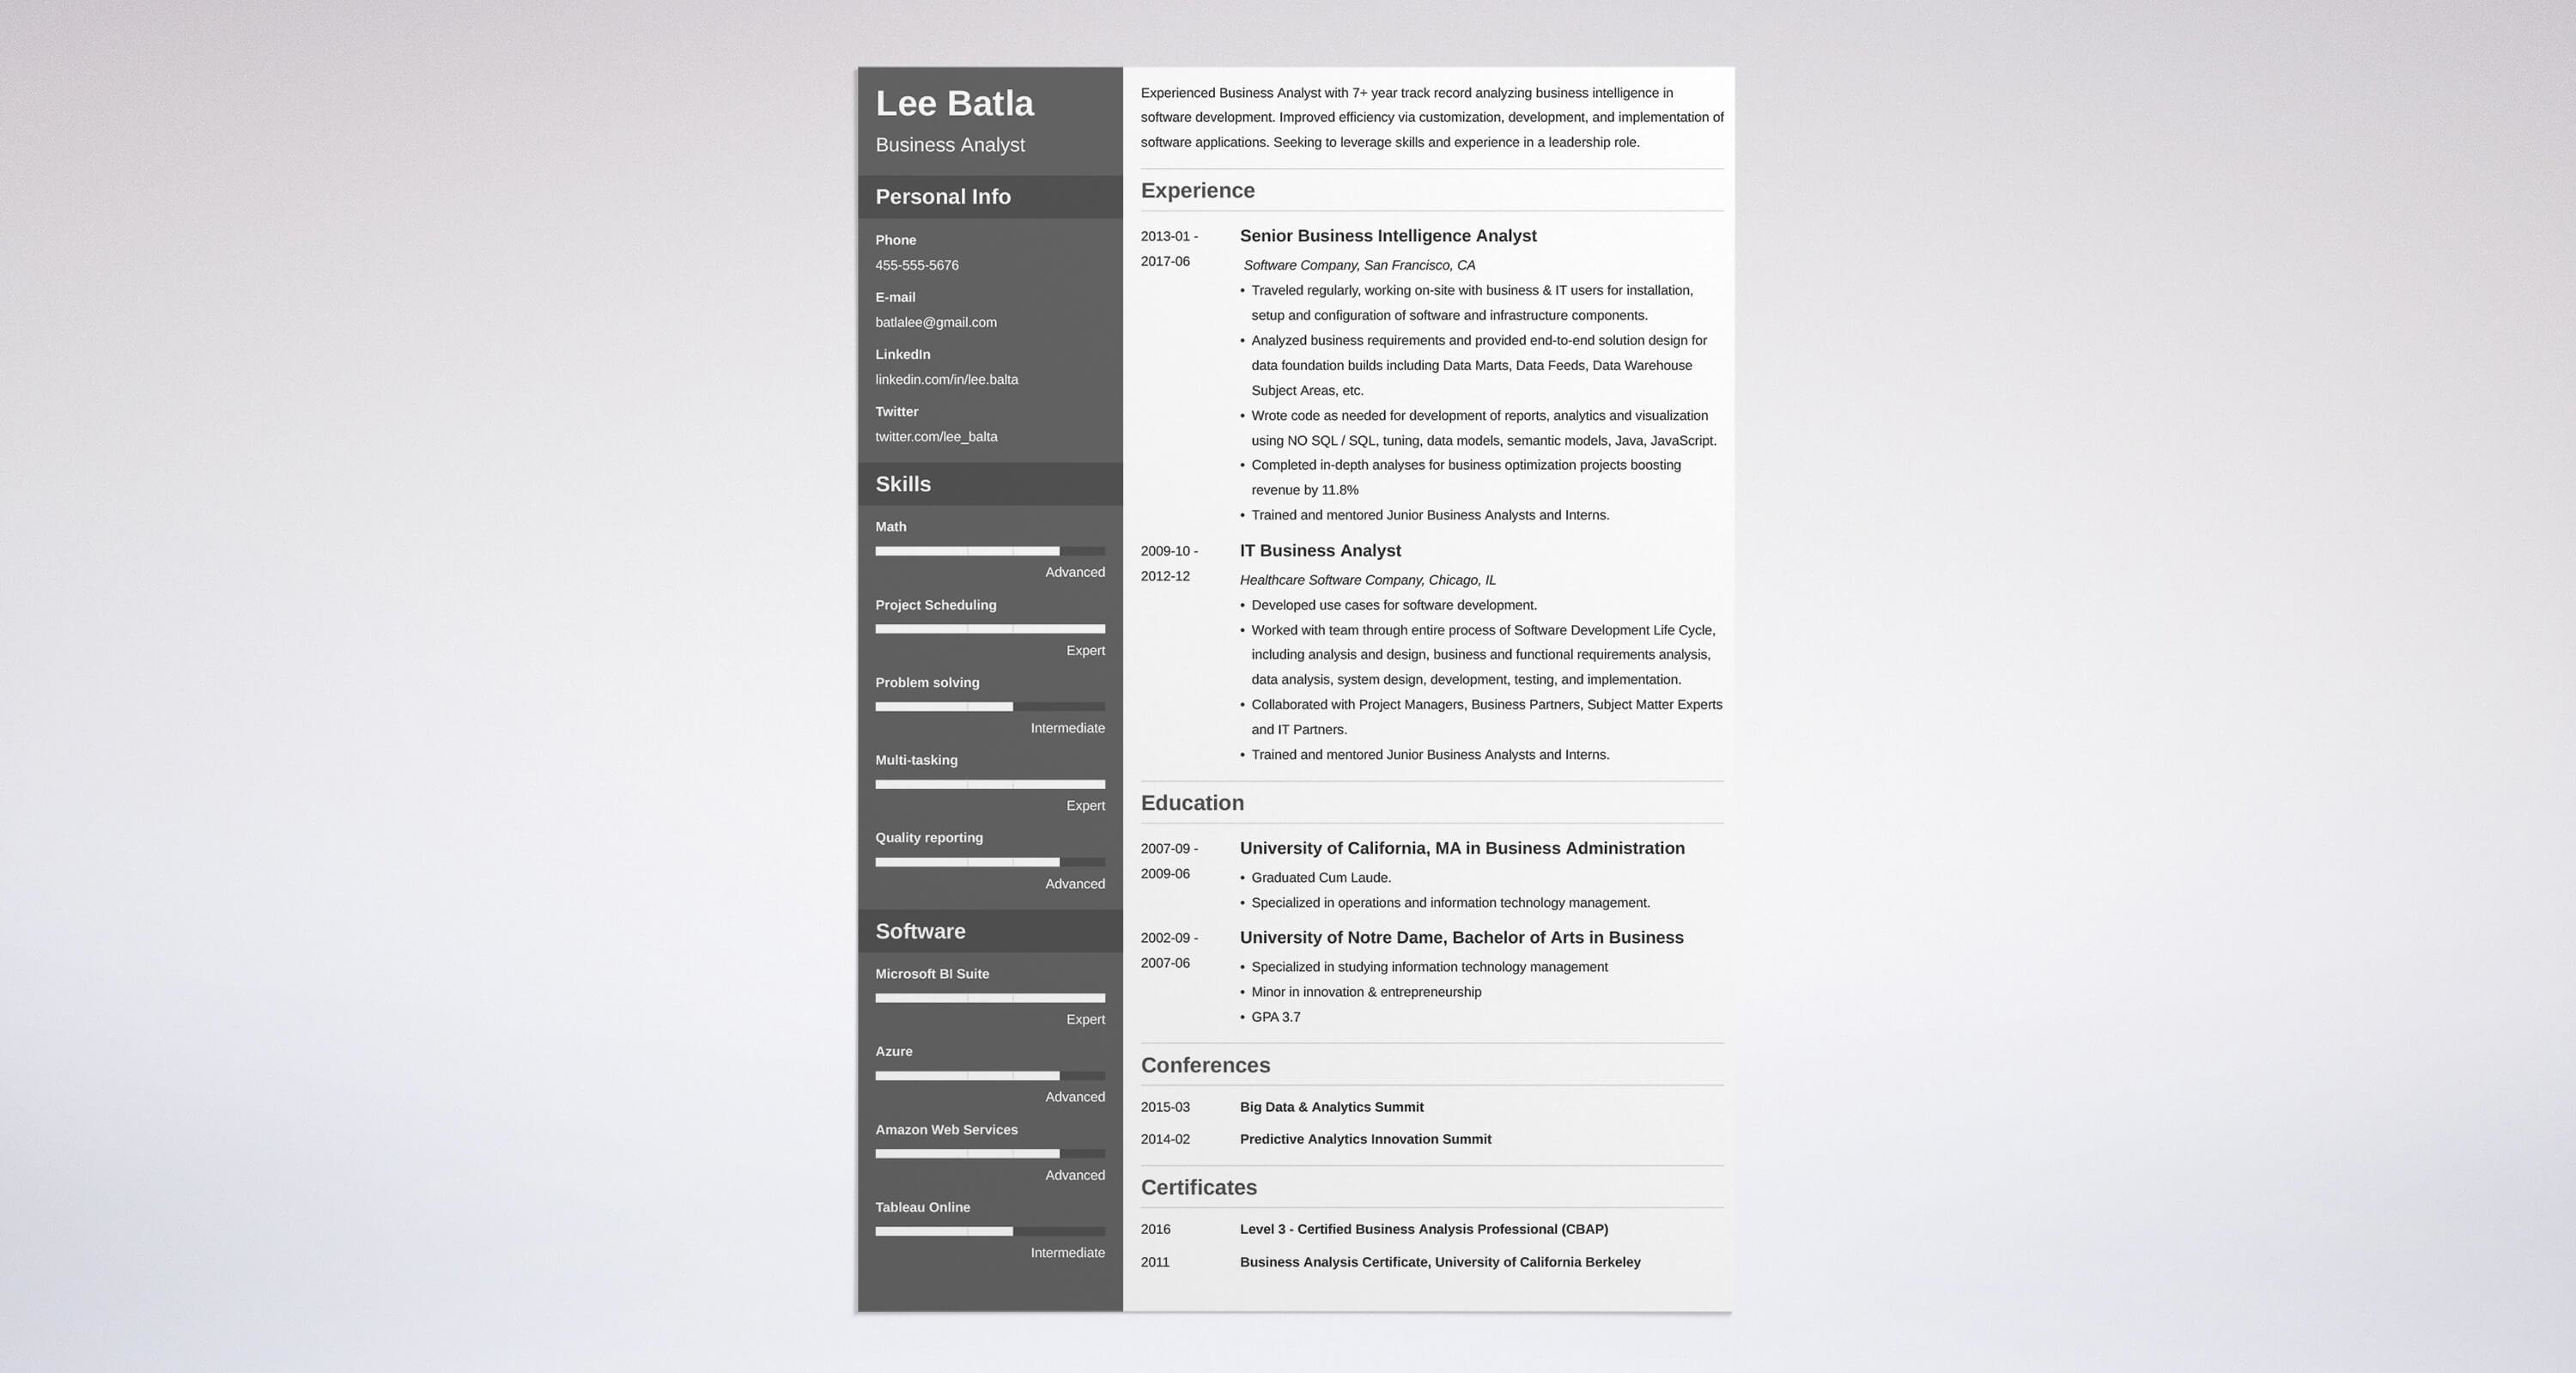 Wonderful Business Analyst Resume: Sample U0026 Complete Guide [+20 Examples]